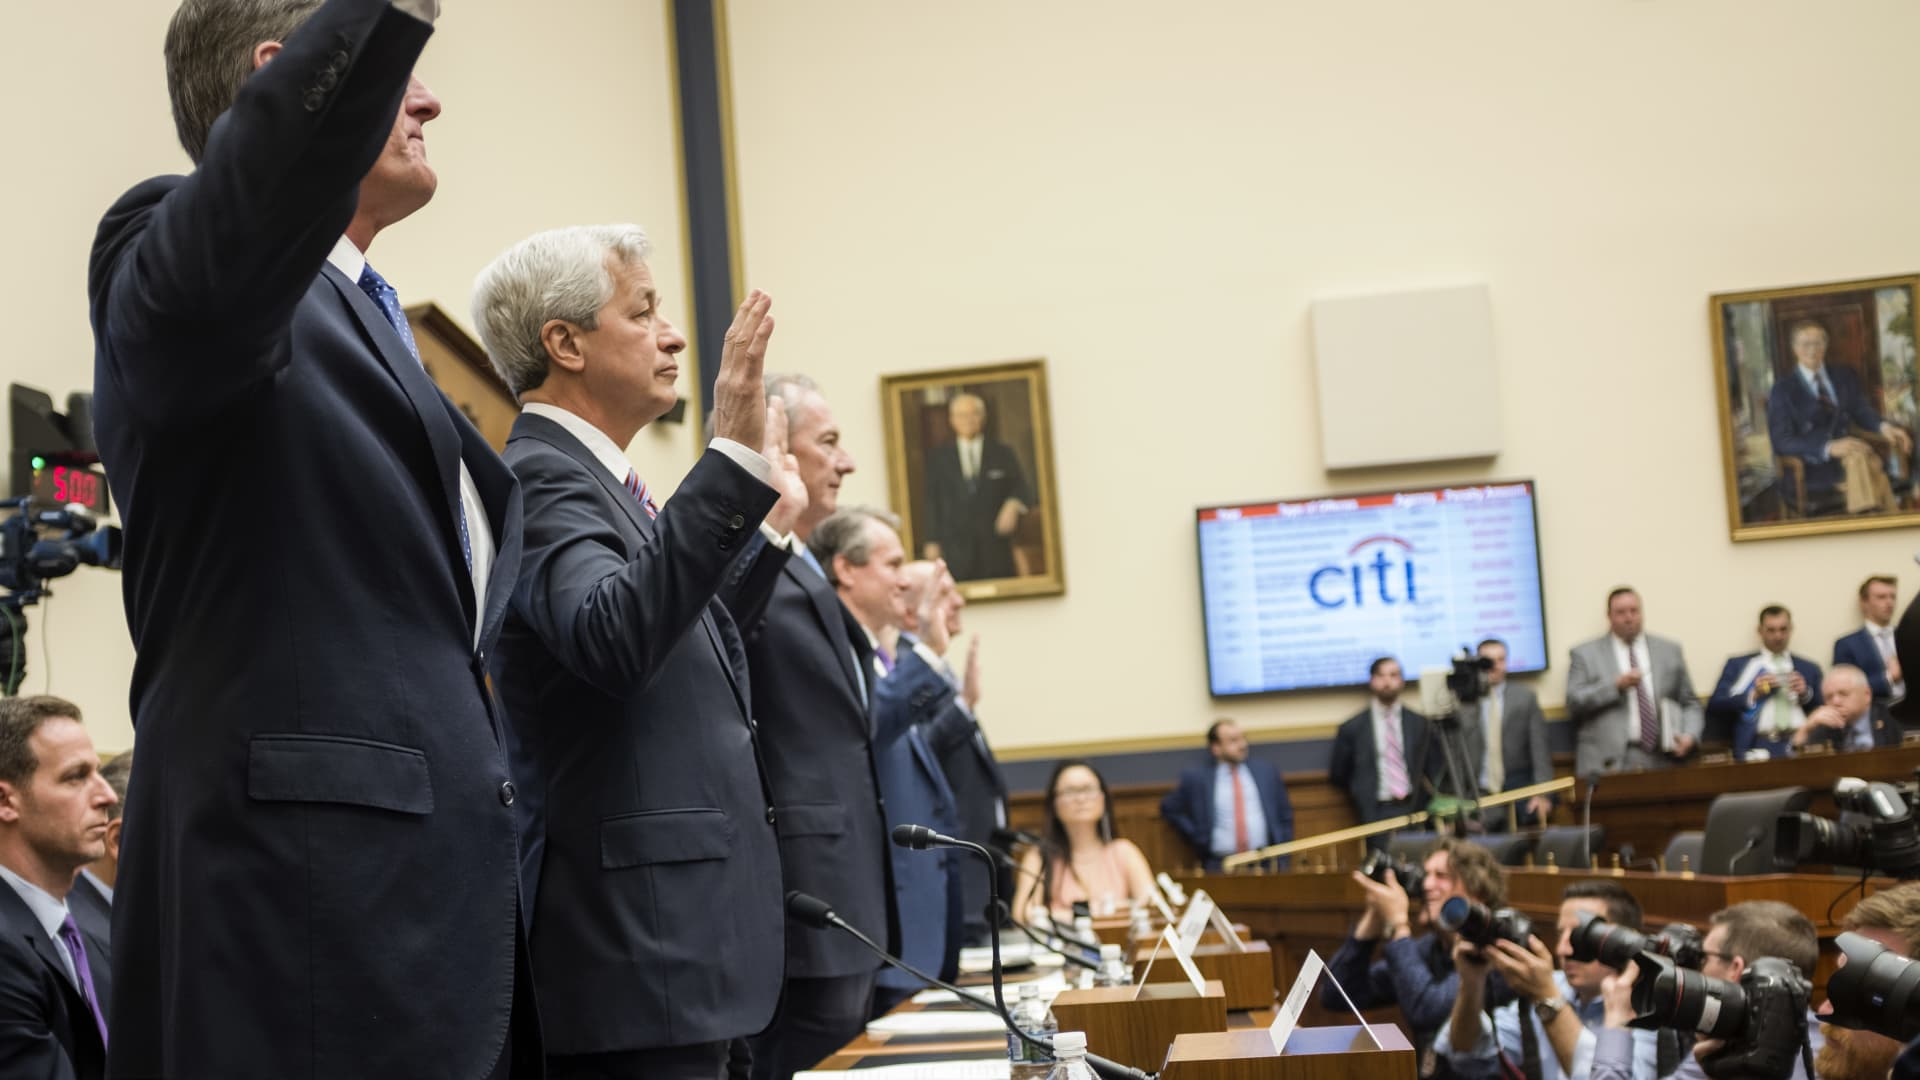 (L to R) Michael Corbat, CEO of Citigroup, Jamie Dimon, CEO of JP Morgan Chase, James Gorman, CEO of Morgan Stanley, Brian Moynihan, CEO of Bank of America, Ronald OHanley, CEO of State Street Corporation, Charles Scharf, CEO of Bank of New York Mellon, and David Solomon, CEO of Goldman Sachs are sworn in to testify before the House Financial Services Commitee in Washington Wednesday April 10, 2019.